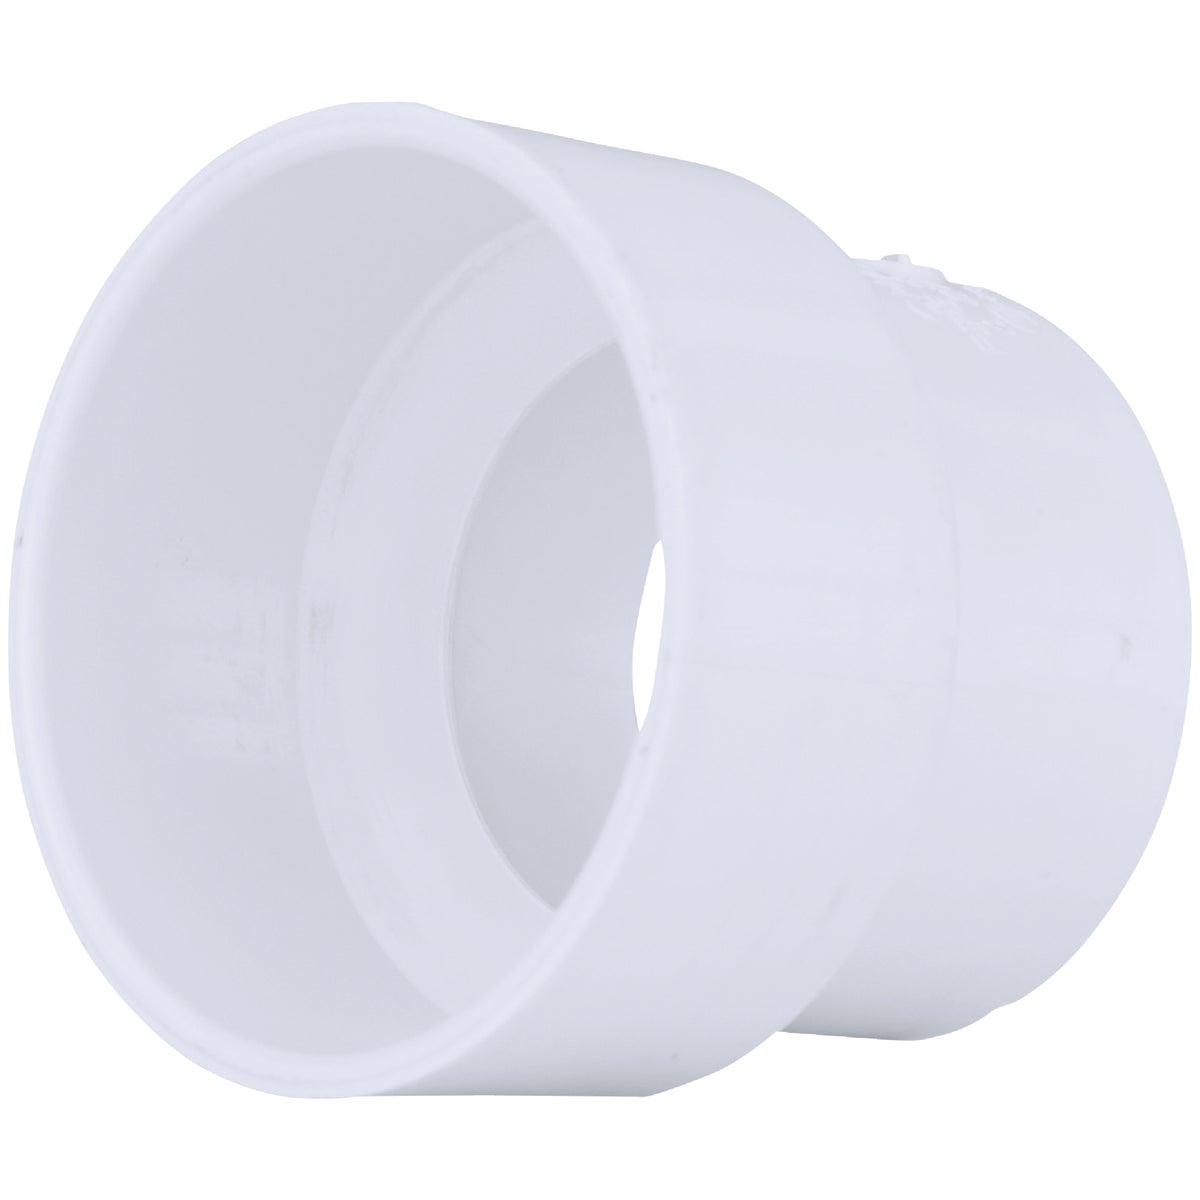 "4""X3"" ADAPTER COUPLING - 71543 by Genova Inc  Pvc Dwv"